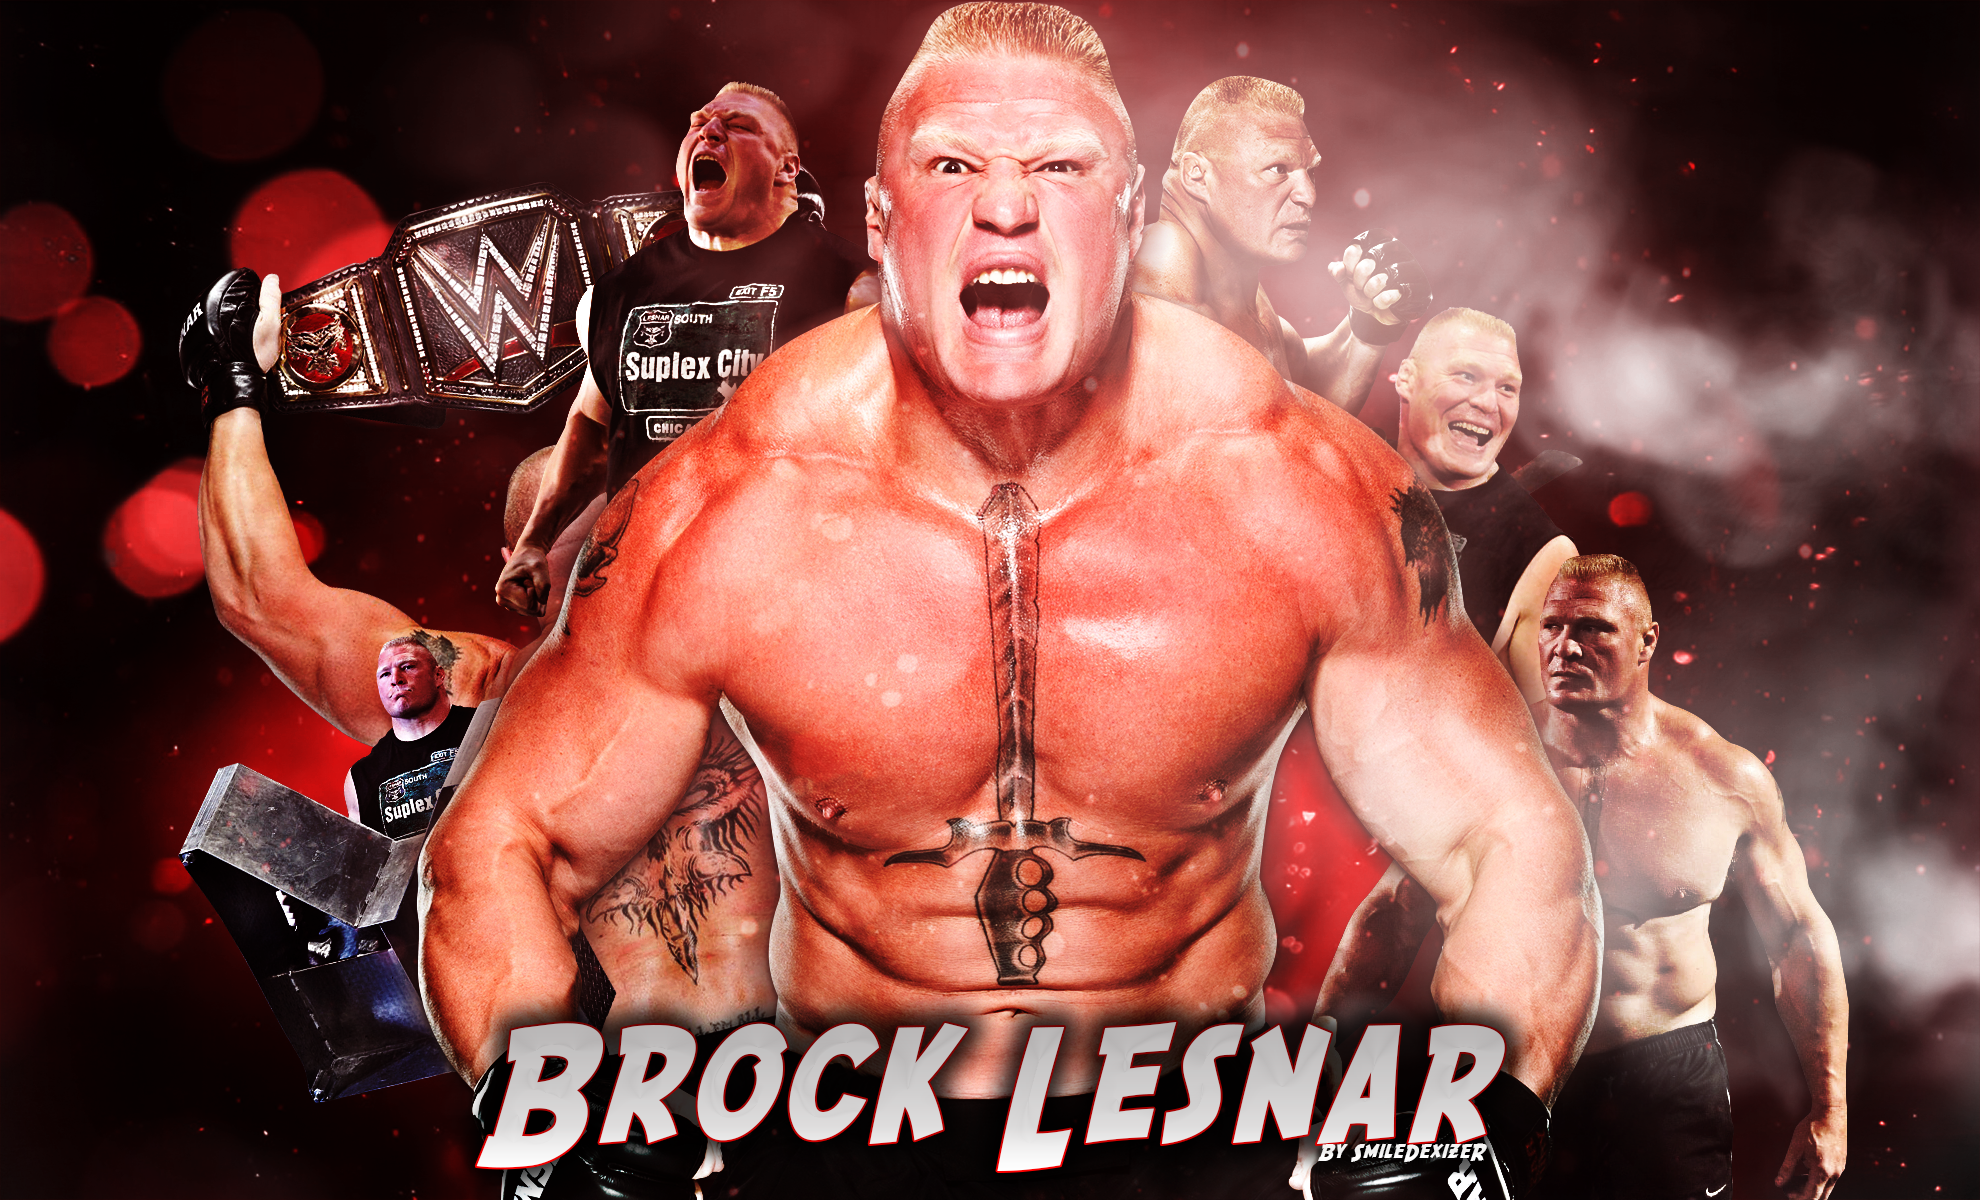 brock lesnar hd wallpapers 9 brocklesnarhdwallpapers brocklesnar